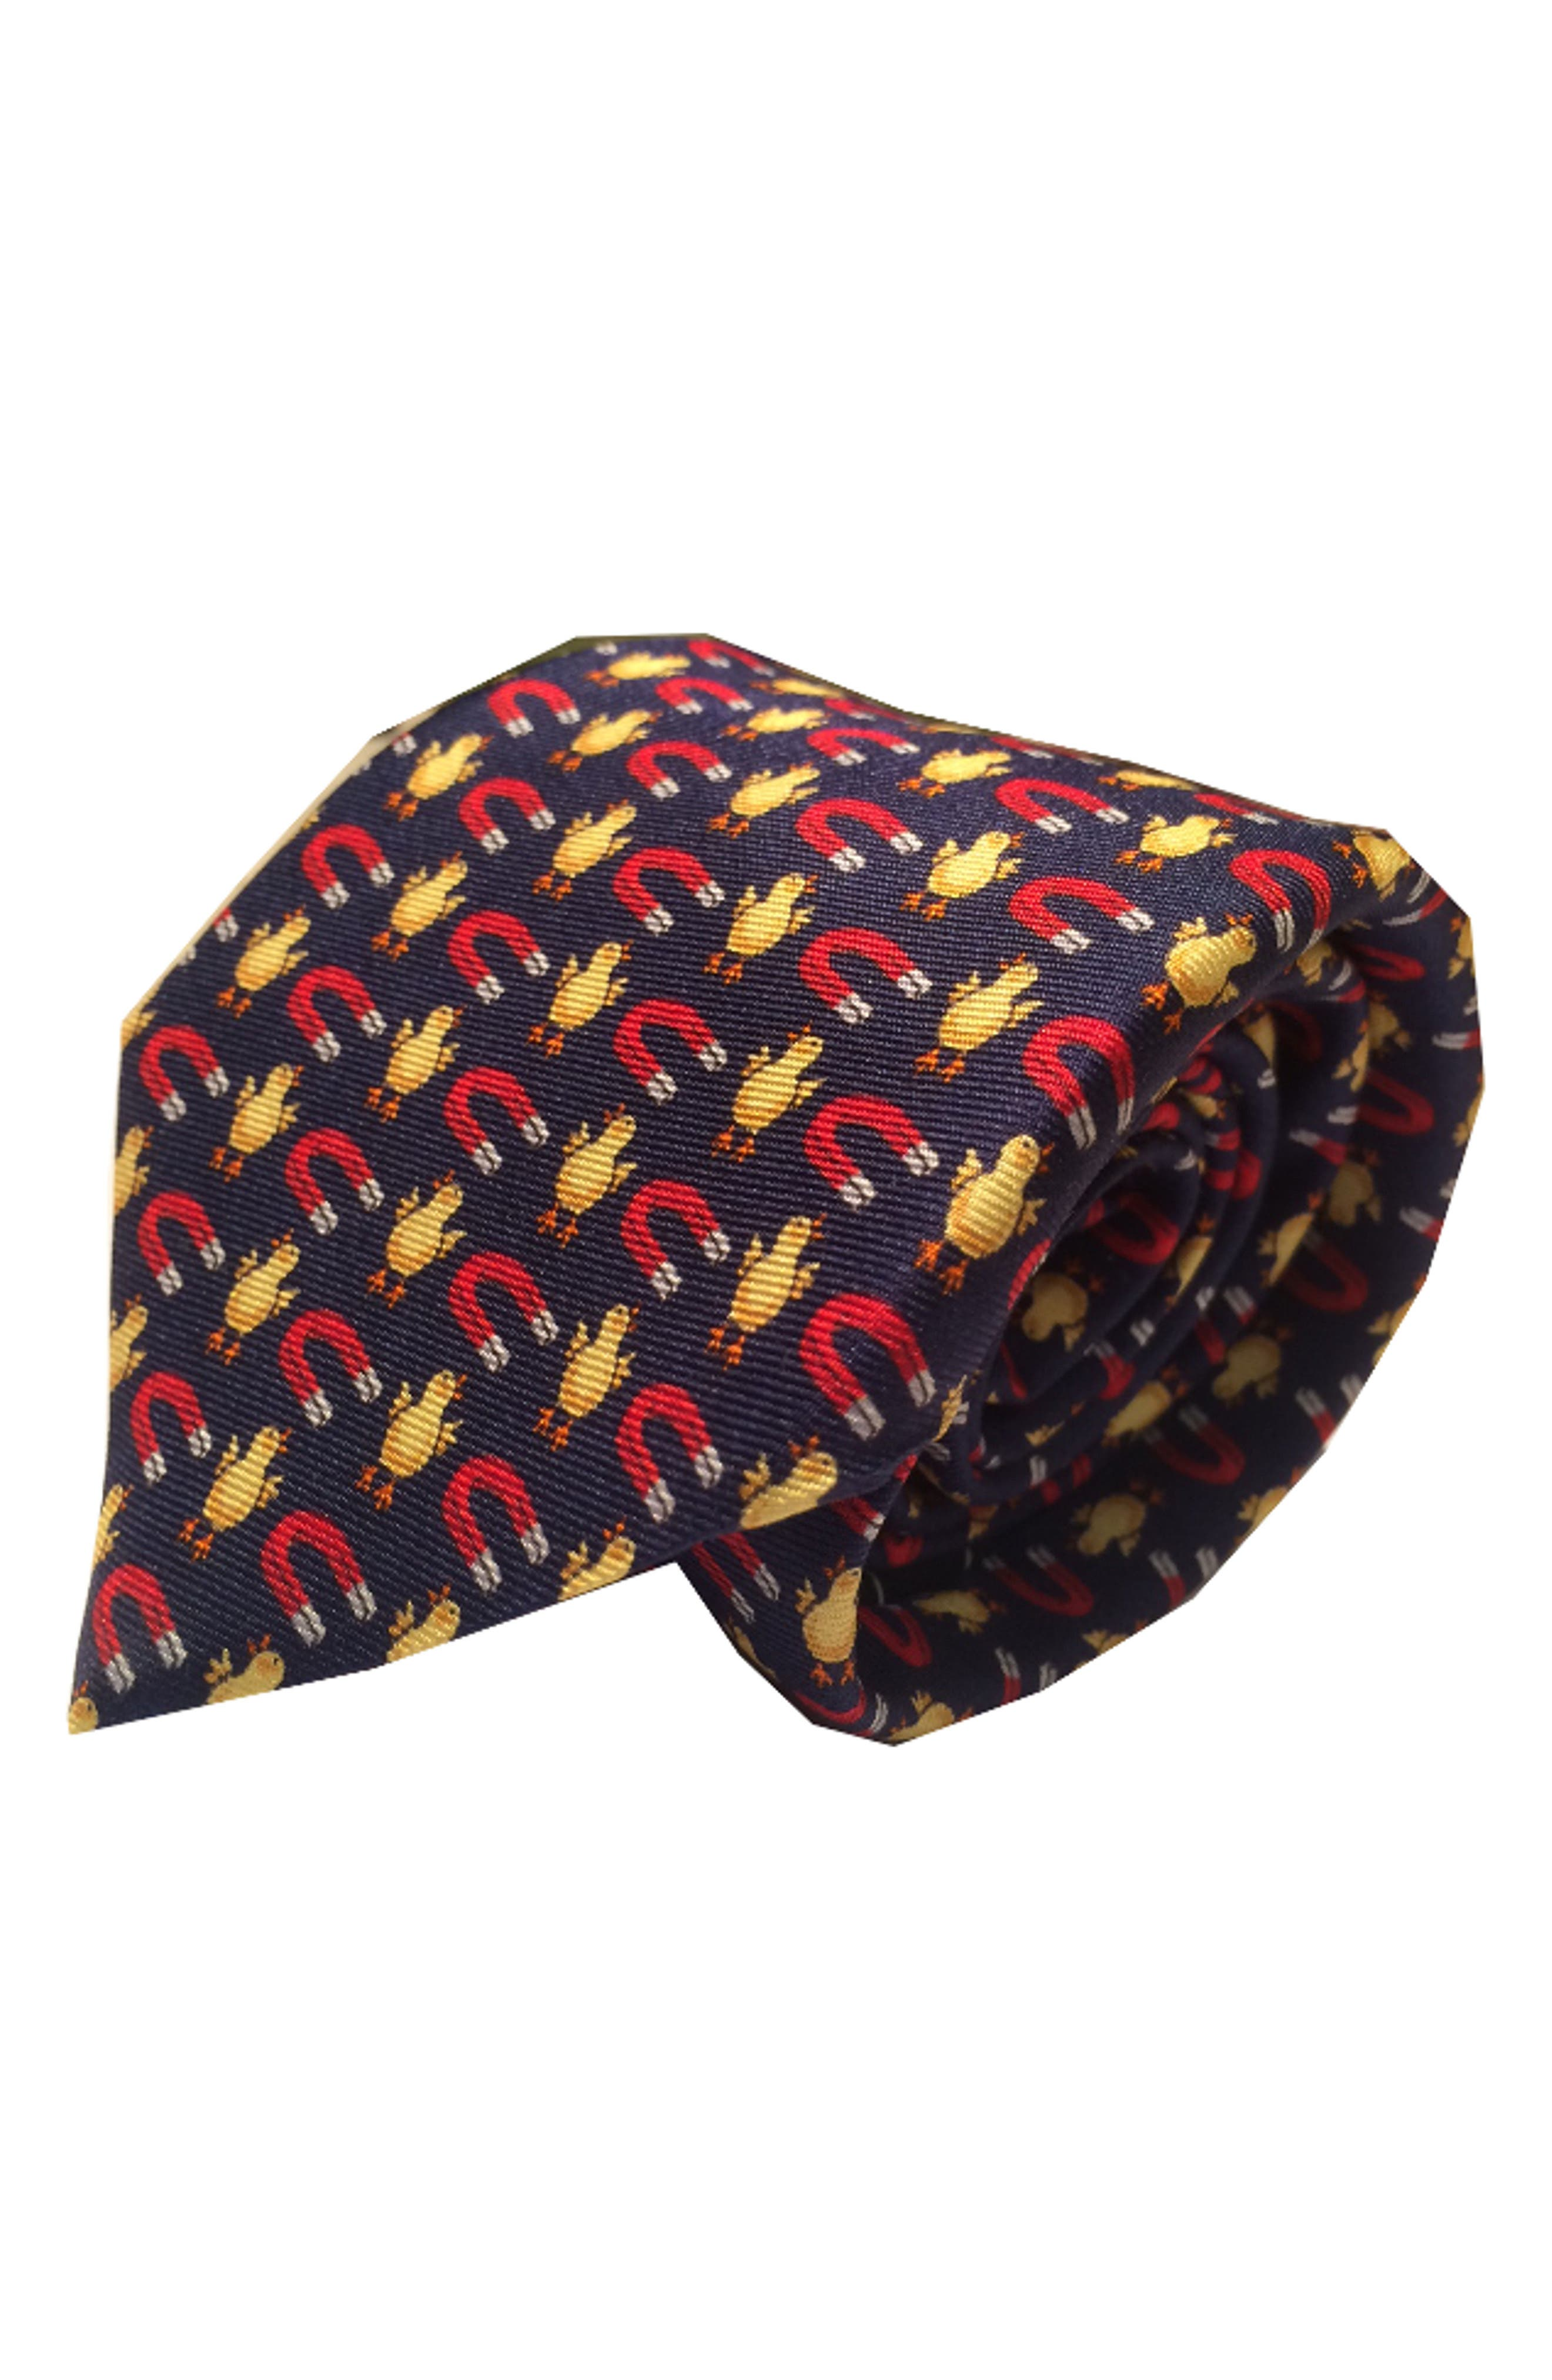 Chick Magnet Silk Tie,                         Main,                         color, Navy